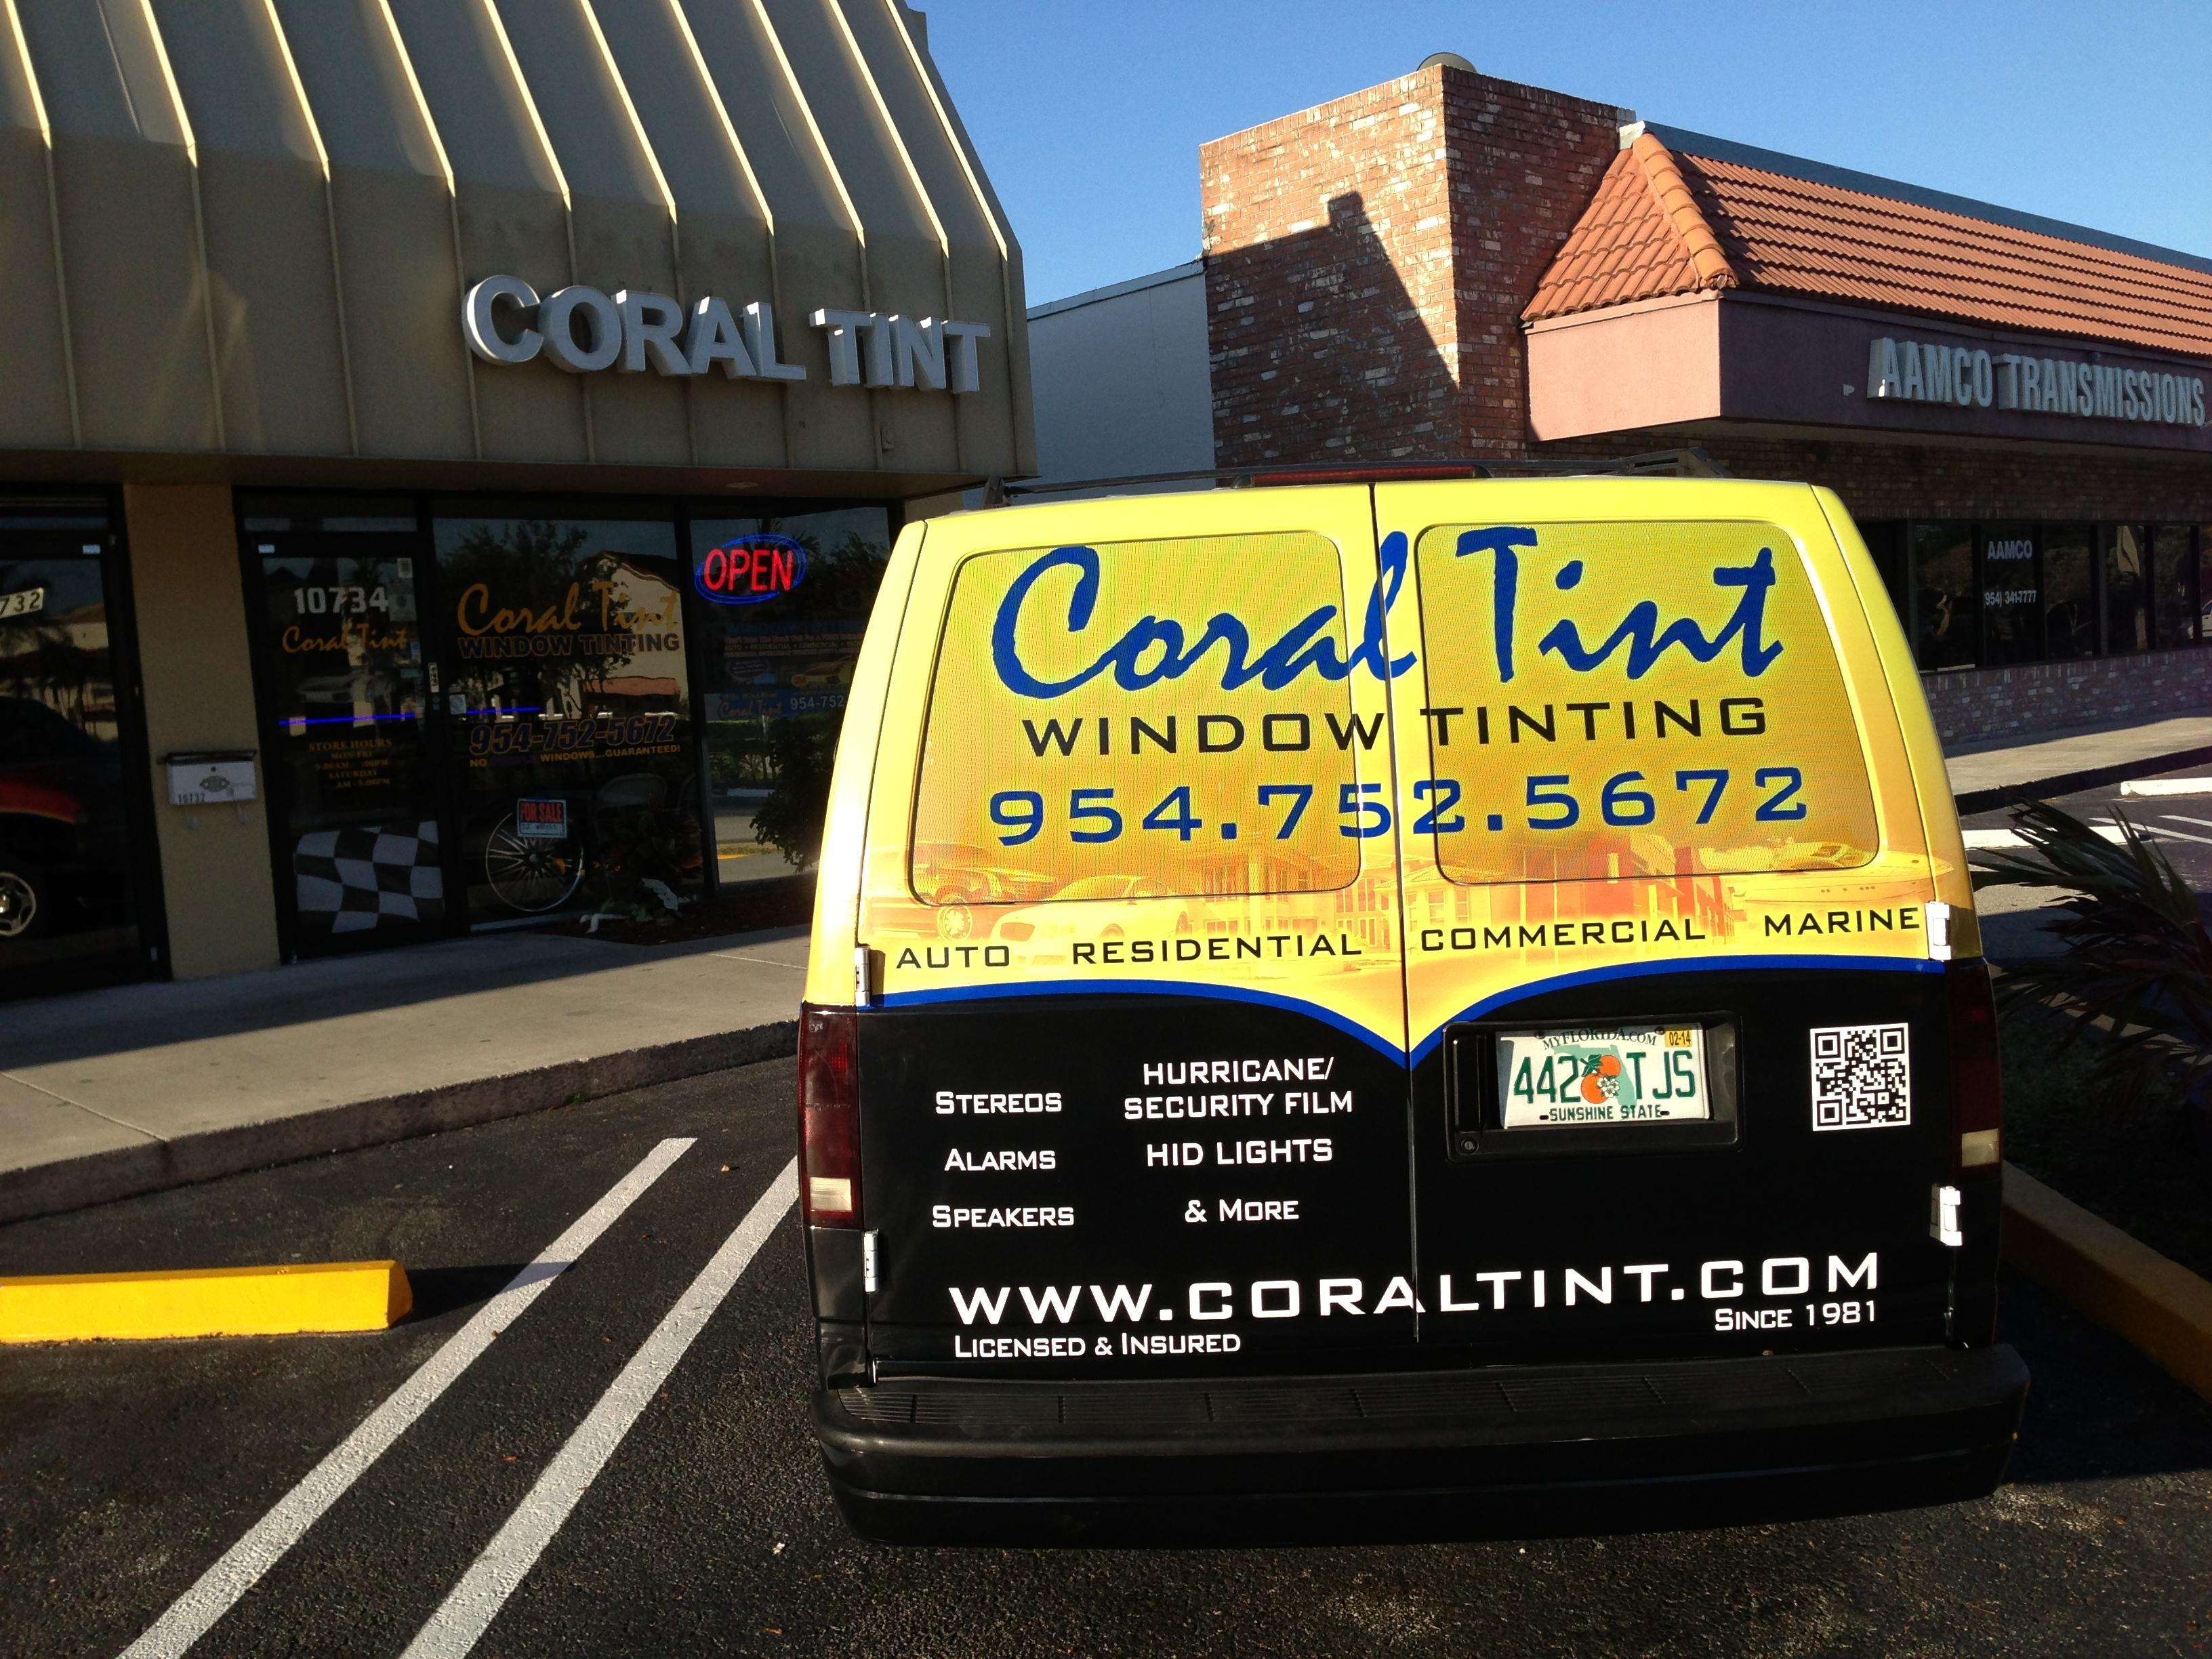 Auto Window Tinting in FL CORAL SPRINGS 33076 CORAL TINT SOUND AND SECURITY INC. 10734 WILES ROAD  (954)752-5672